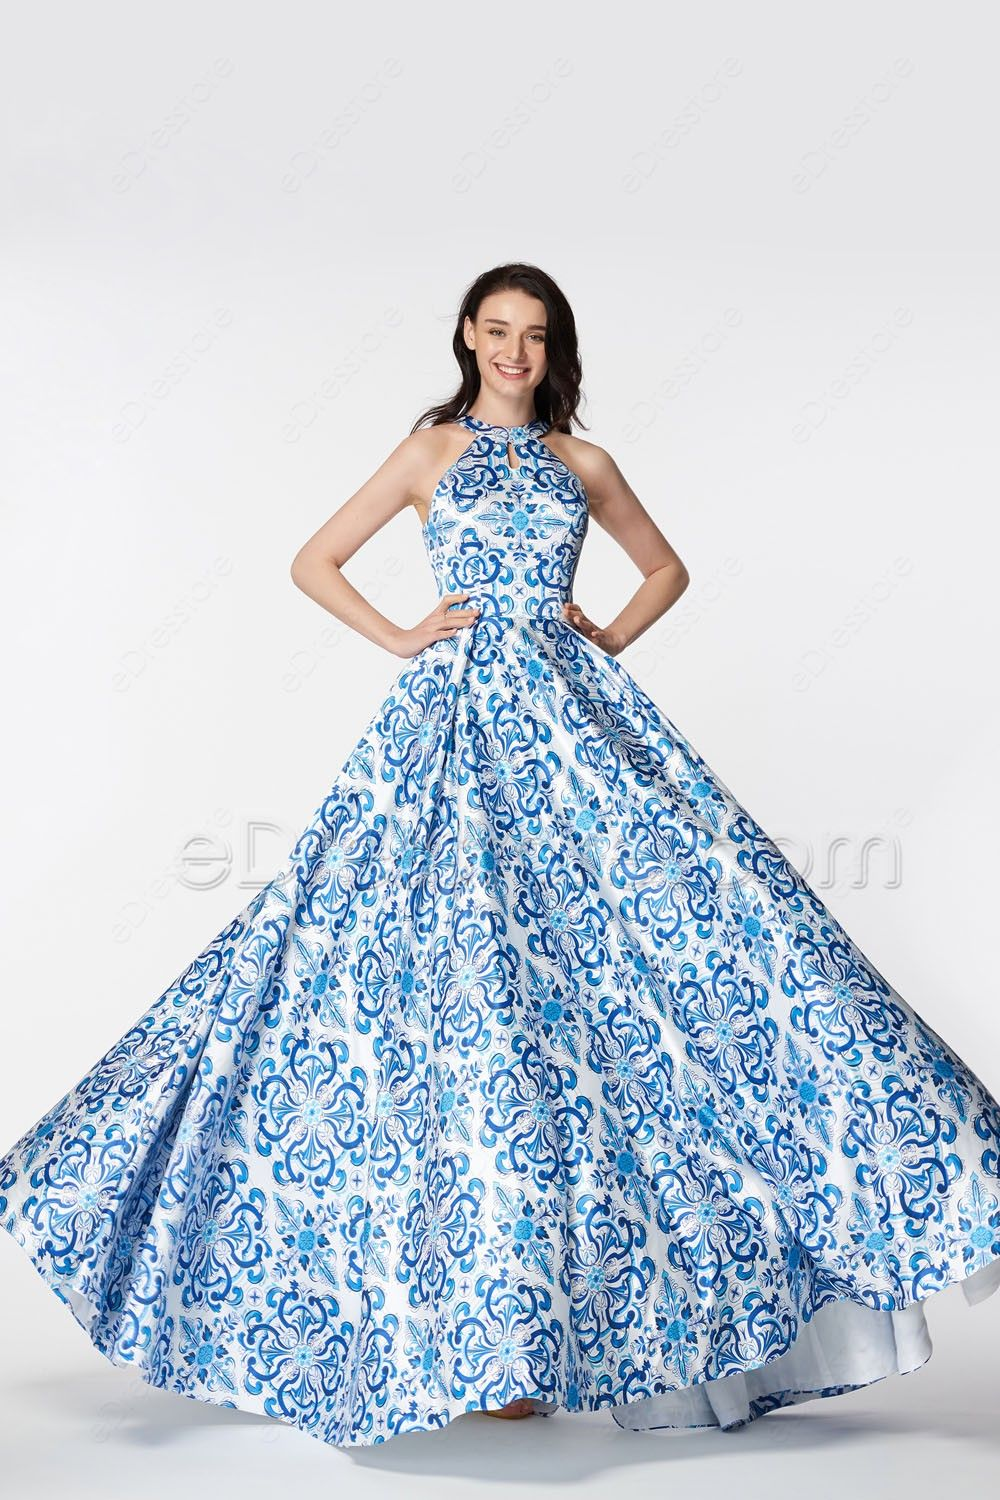 Blue Backless Print Ball Gown Prom Dresses | Ball gowns, Ball gowns ...